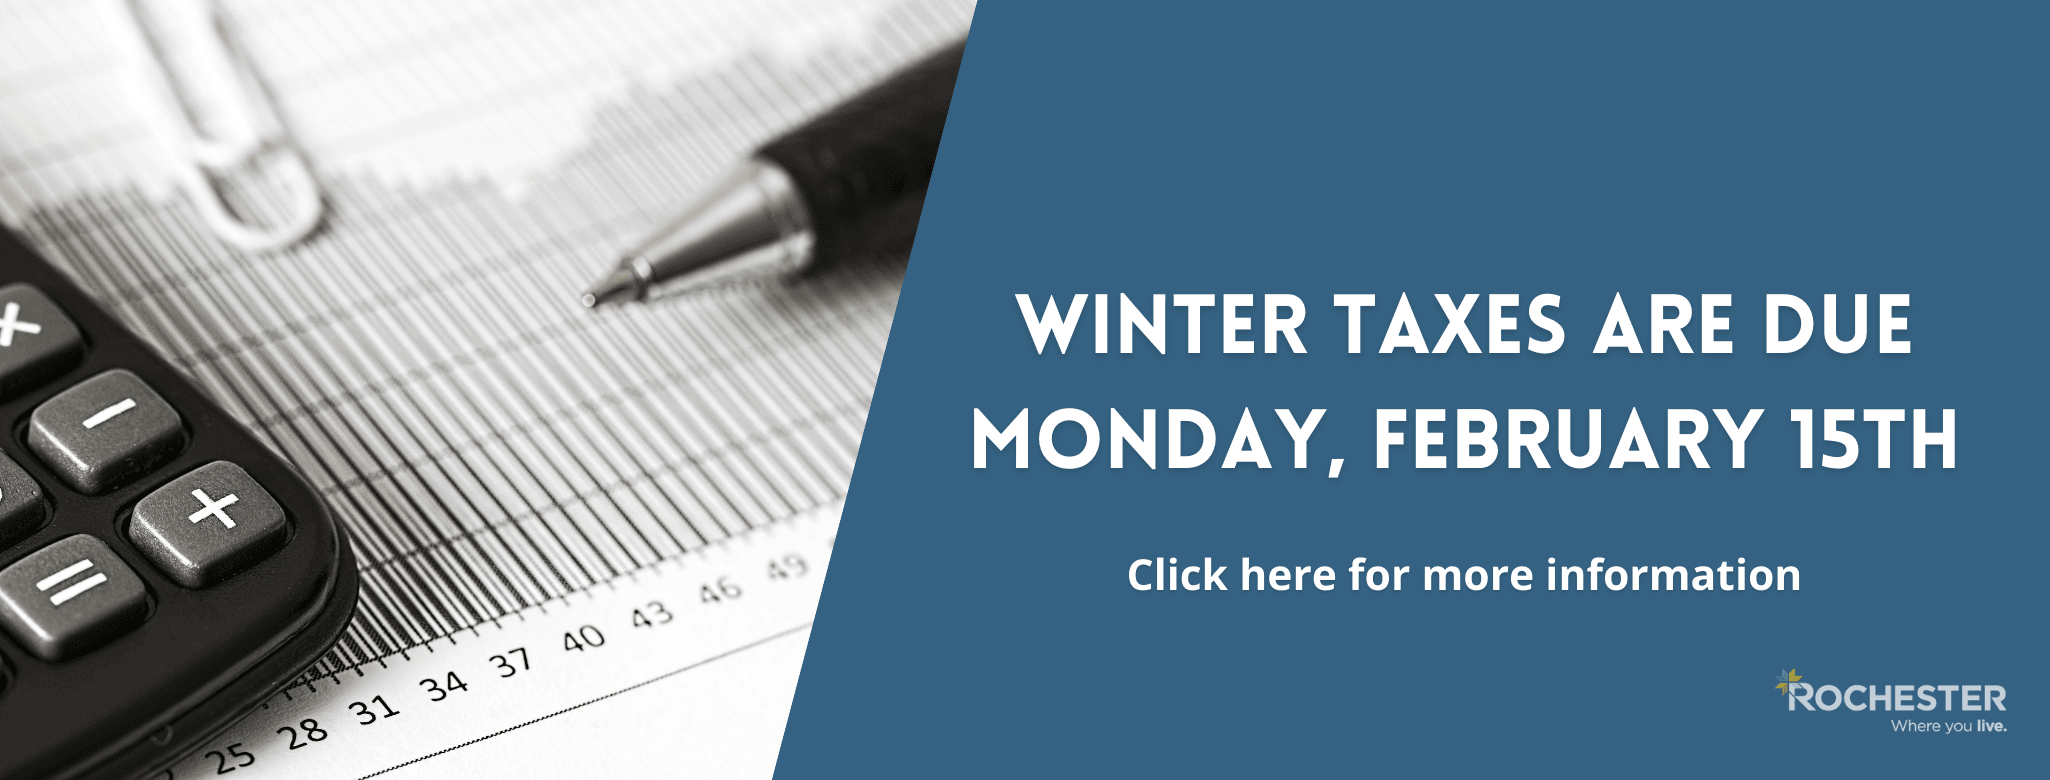 Winter Taxes Due Monday February 15th